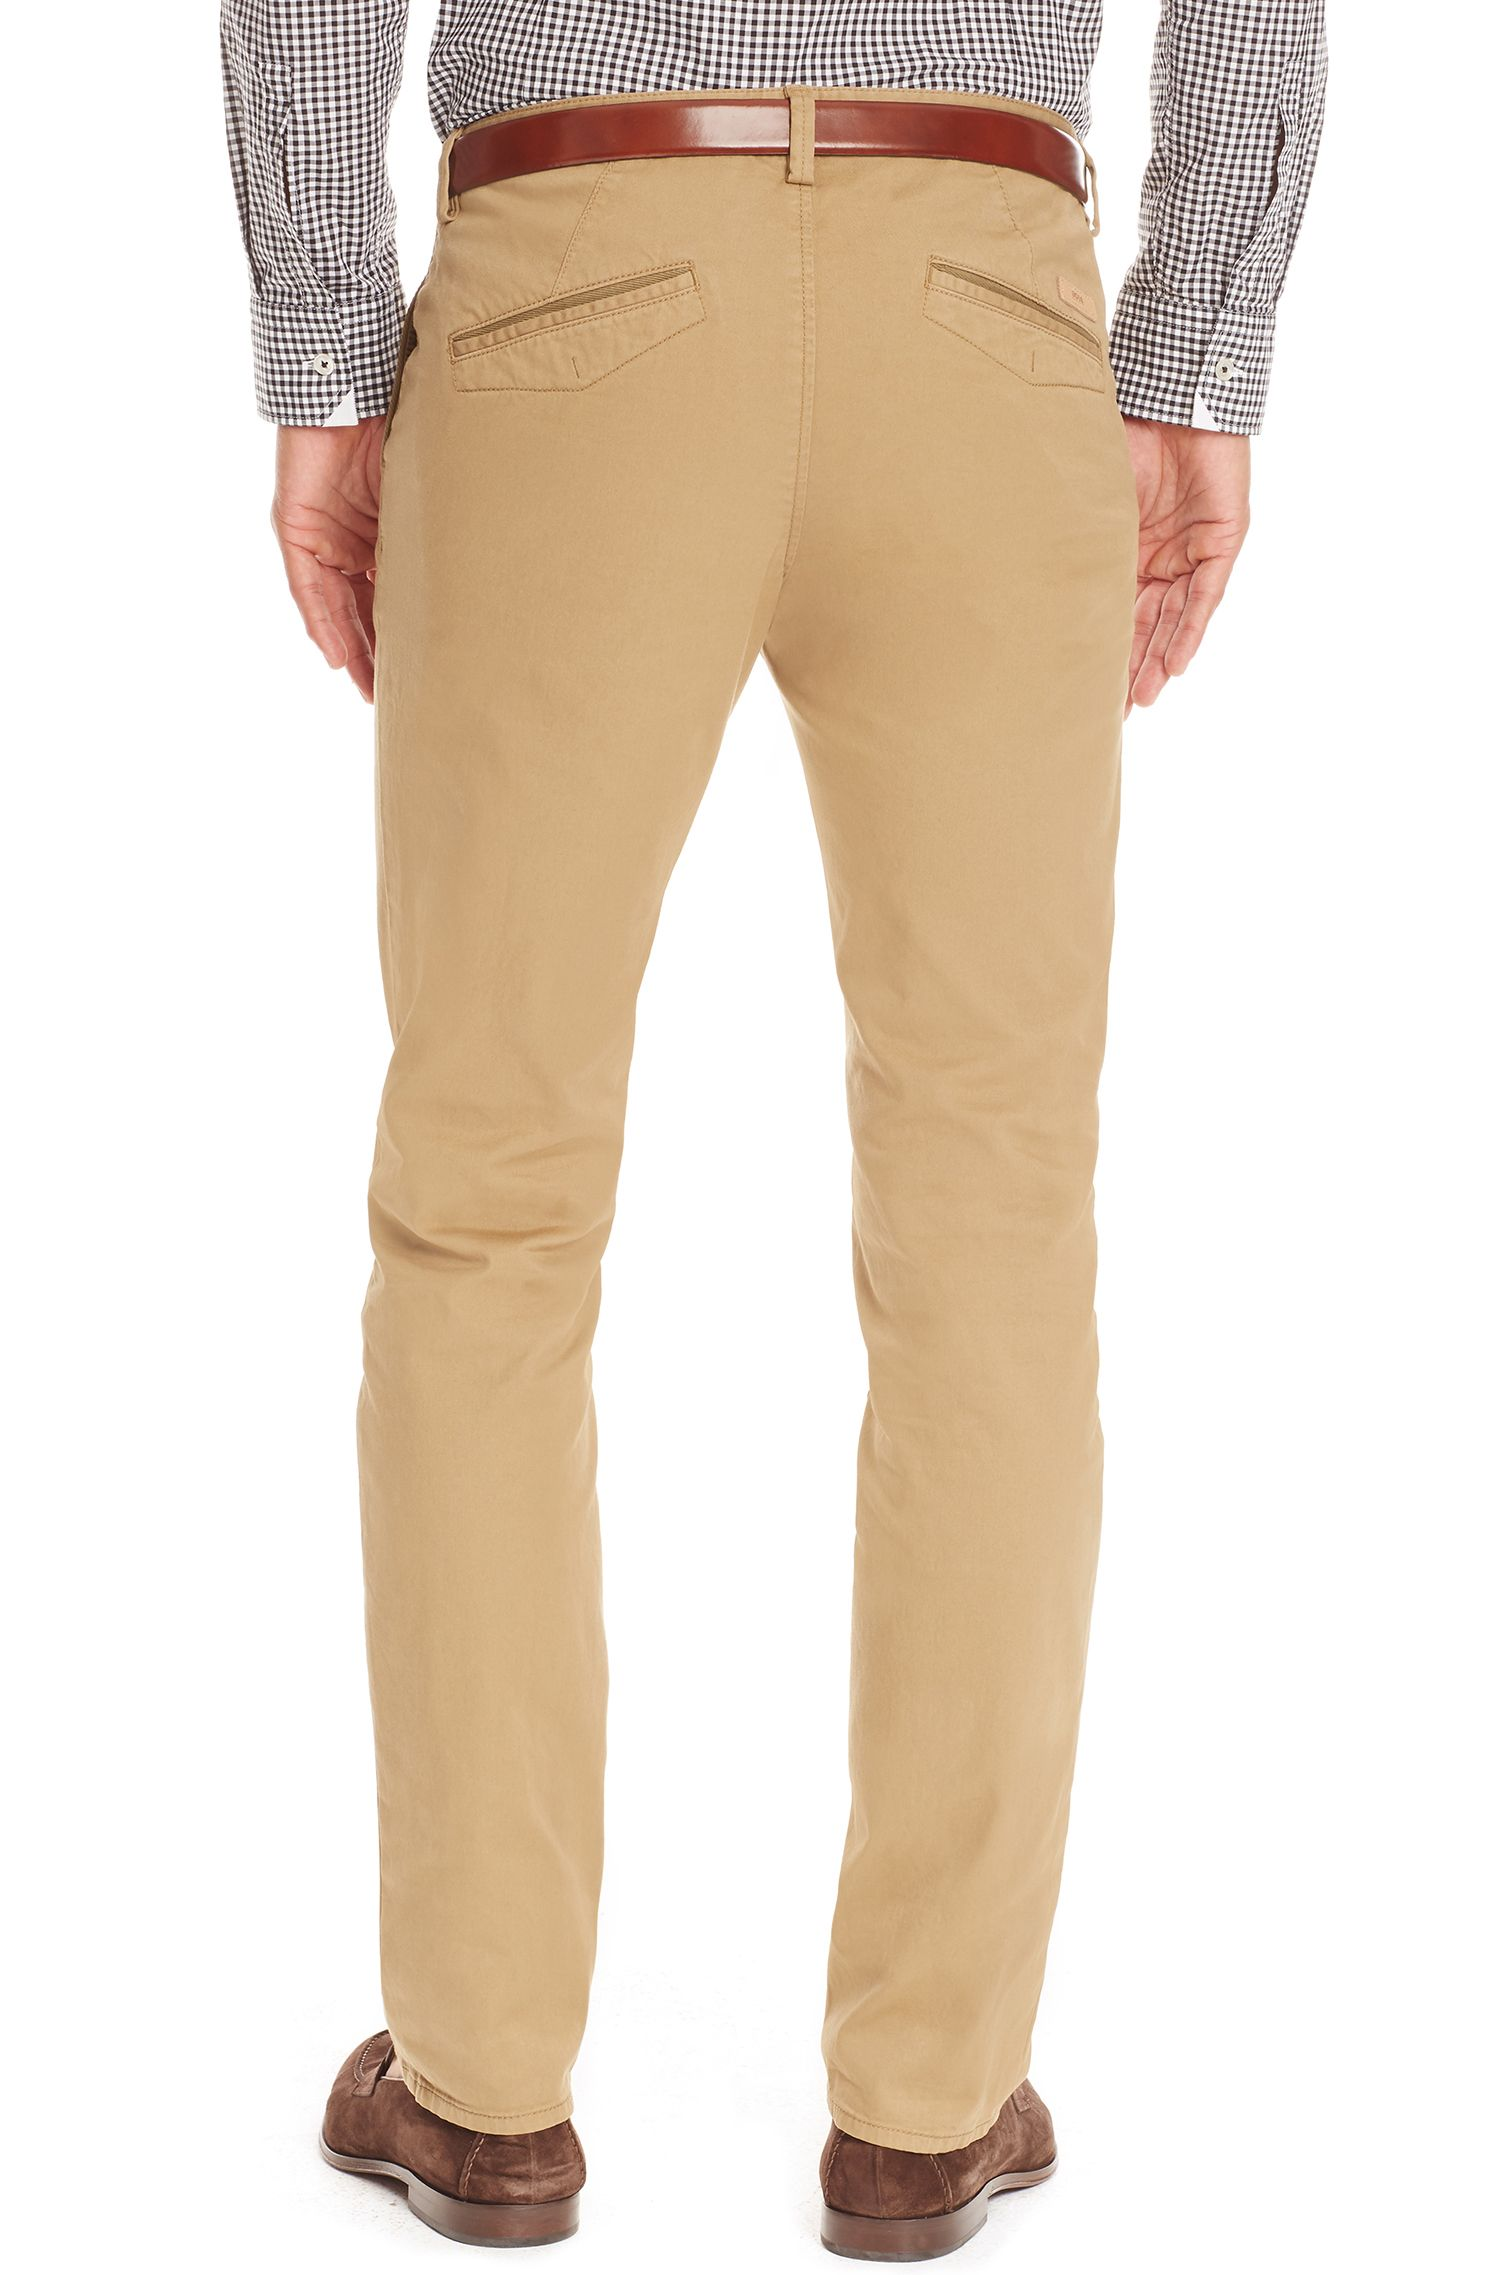 'Rice' | Slim Fit, Stretch Cotton Colored Chinos